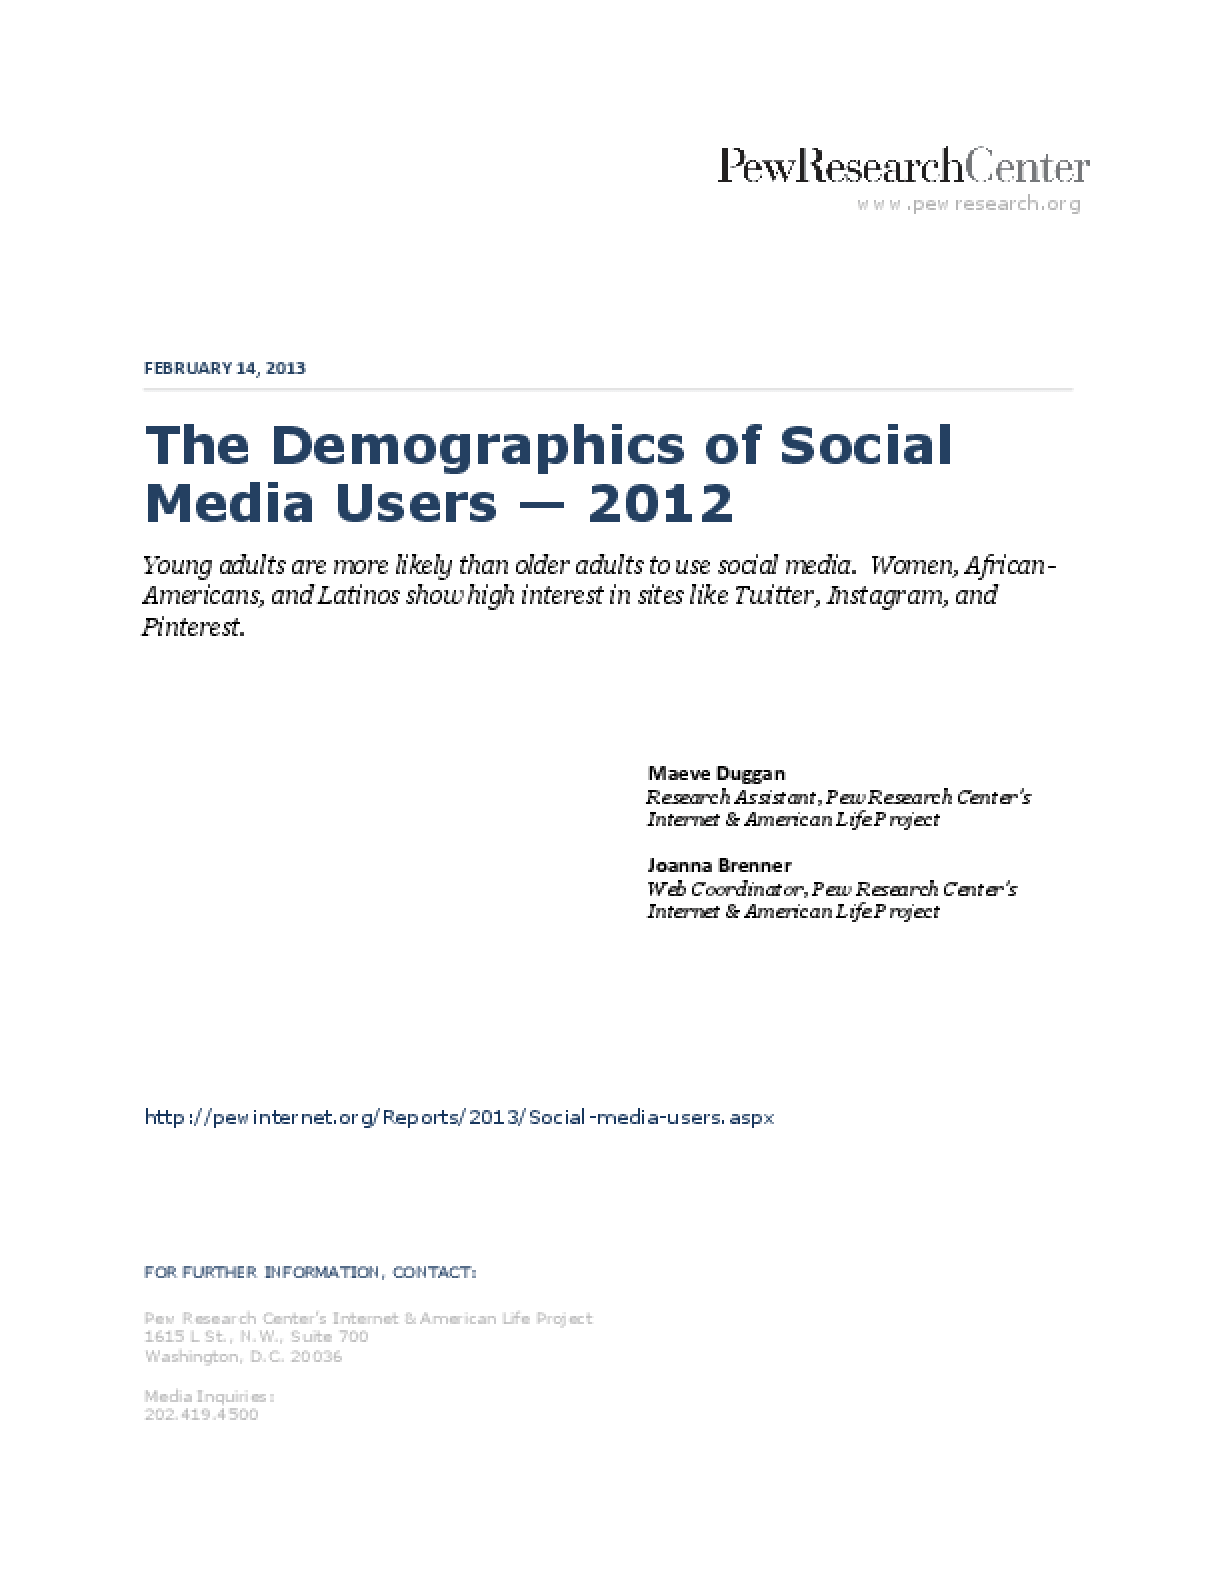 The Demographics of Social Media Users - 2012